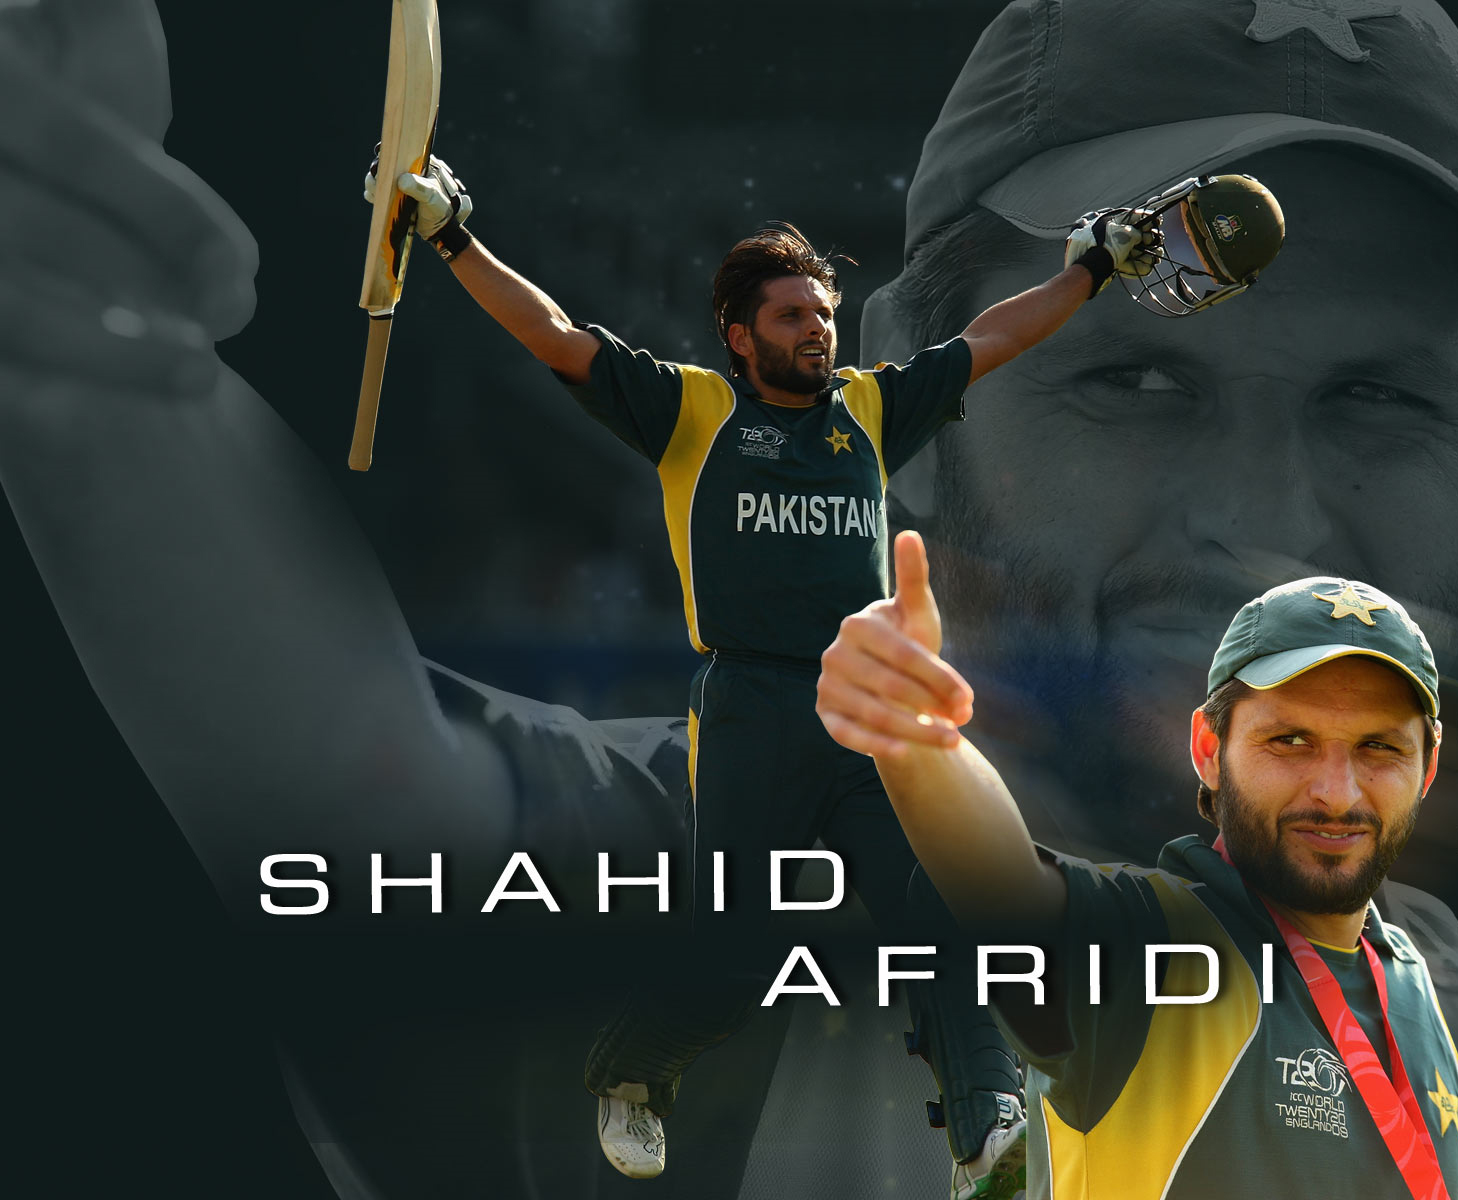 shahid afridi Shahid afridi, shoaib malik, thisara perera confirm participation for icc world xi against windies shahid afridi, shoaib malik and thisara perera are the first set of players who have confirmed their participation for the icc world xi in a t20i against the windies which will be played at lord's on 31 may.